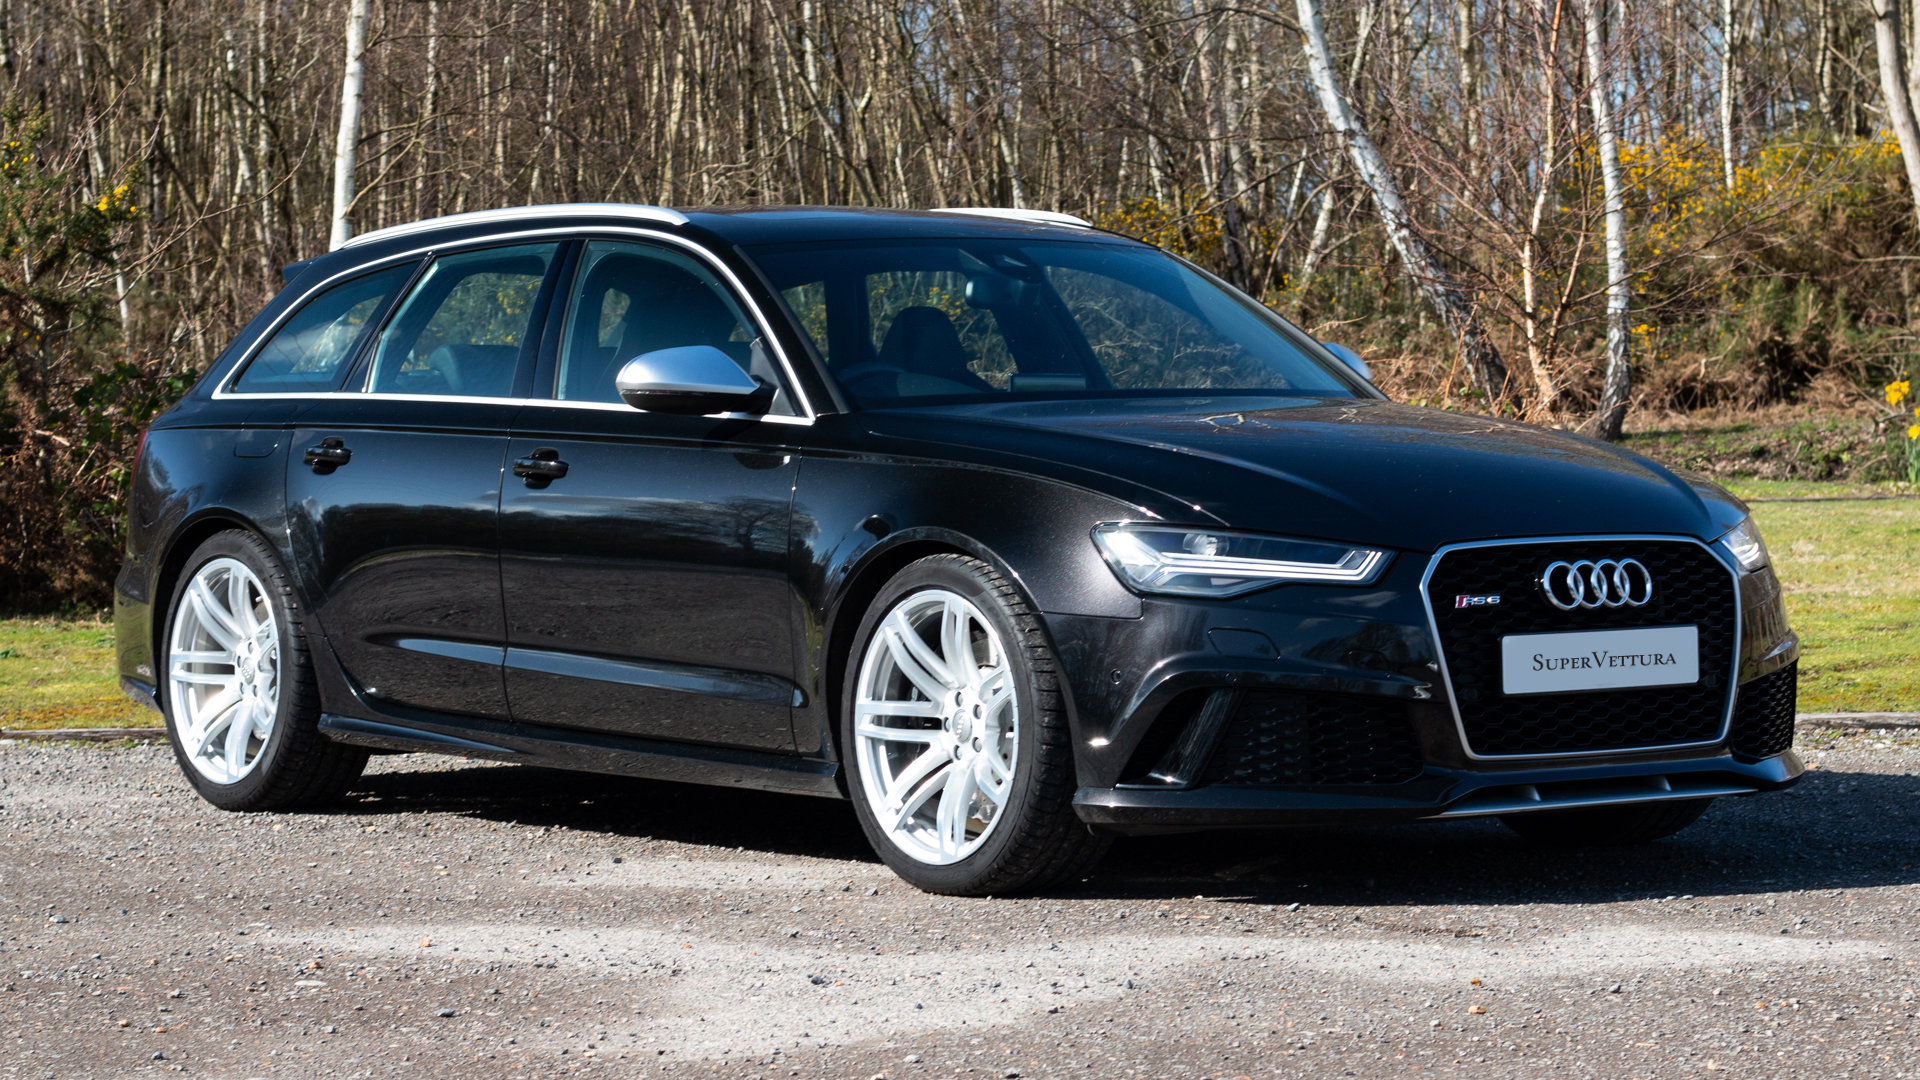 2017 Audi RS6 4.0 V8 TFSI Quattro For Sale (picture 1 of 6)